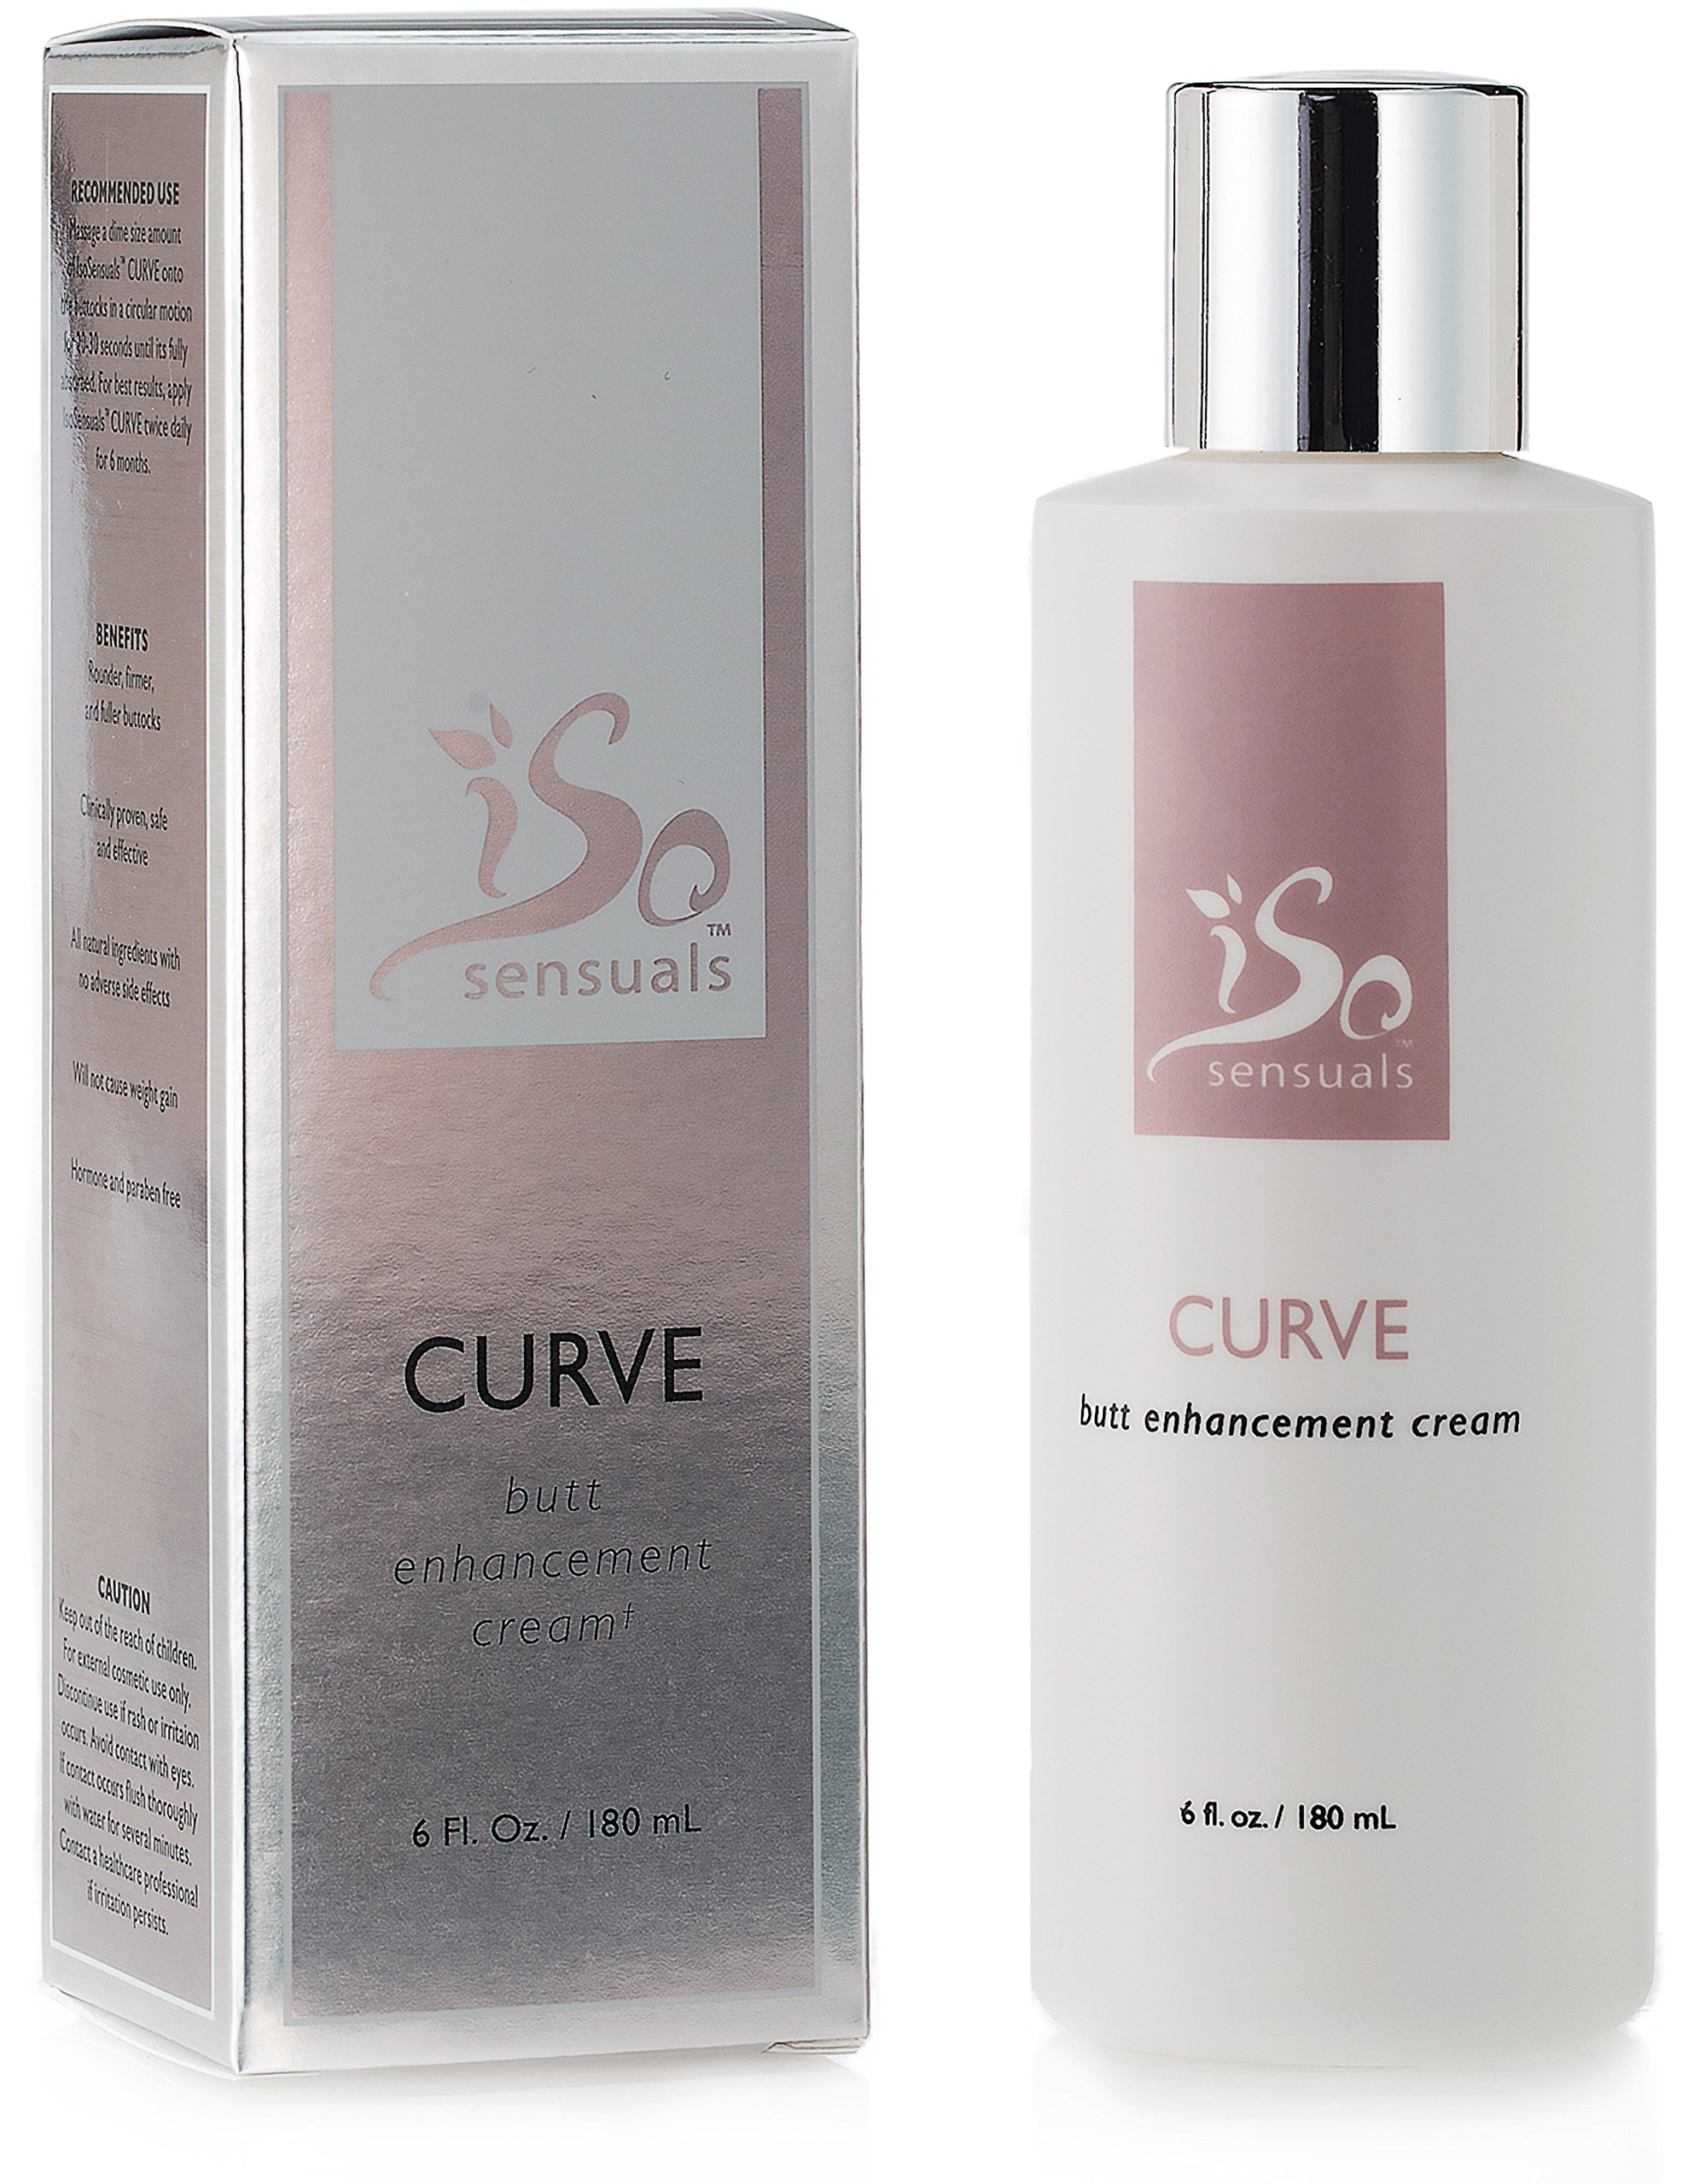 IsoSensuals Curve Butt Enhancement Cream - 1 Bottle (2 Month Supply) by IsoSensuals (Image #1)